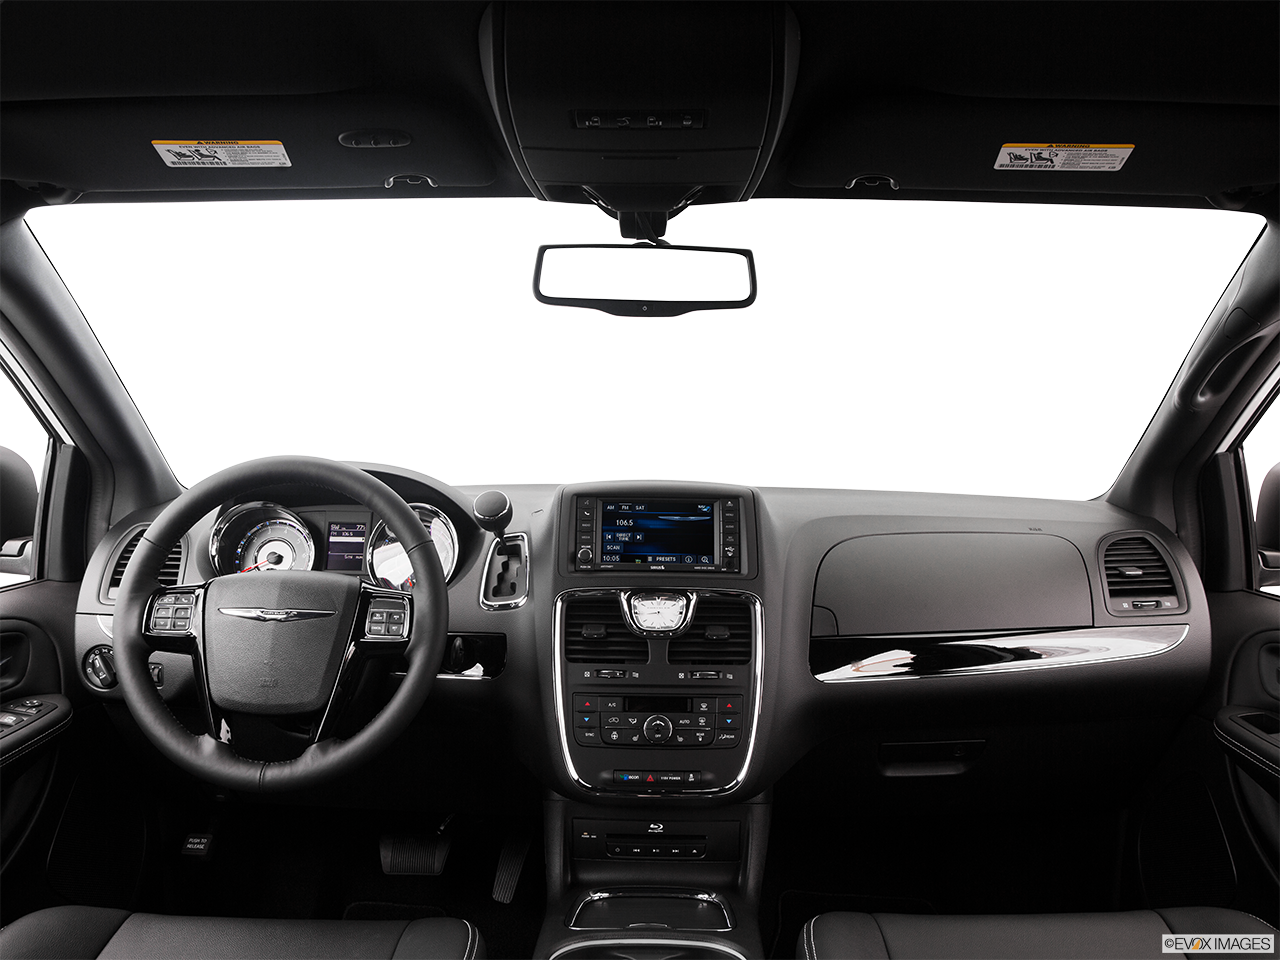 Interior View Of 2016 Chrysler Town & Country  in Tamarac